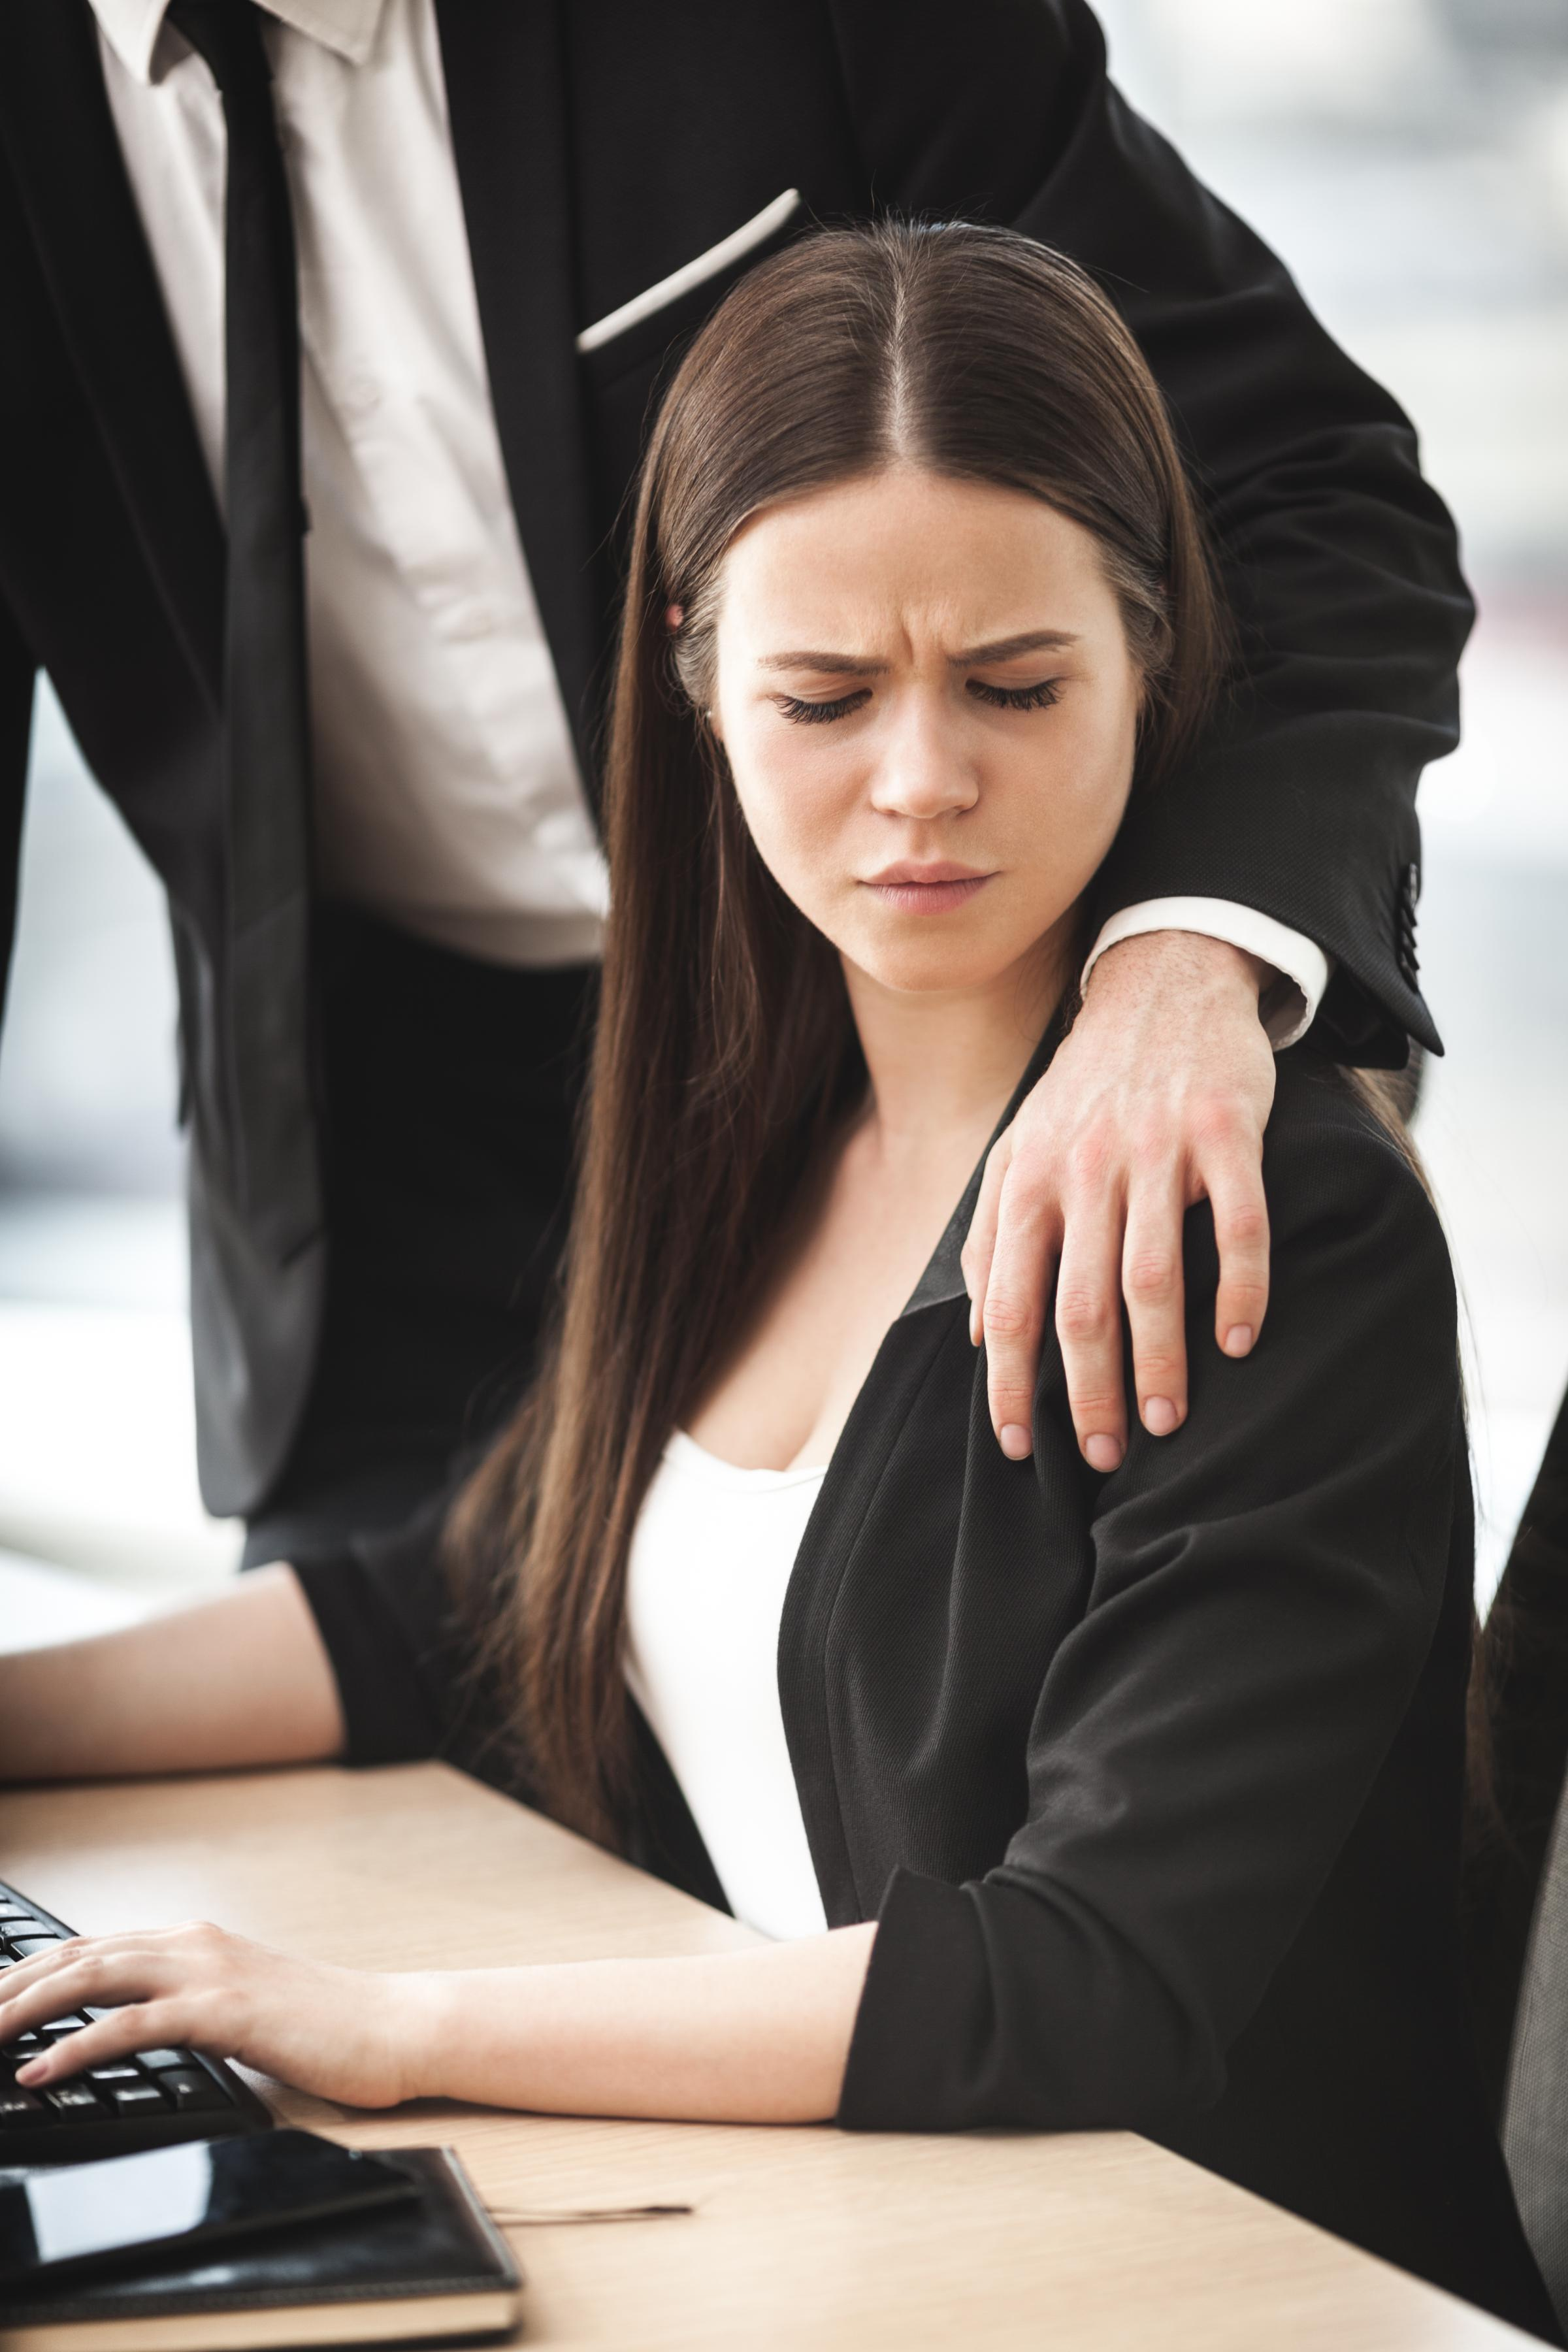 Lawyers call for change amid growing concern over sexual harassment investigations in the workplace